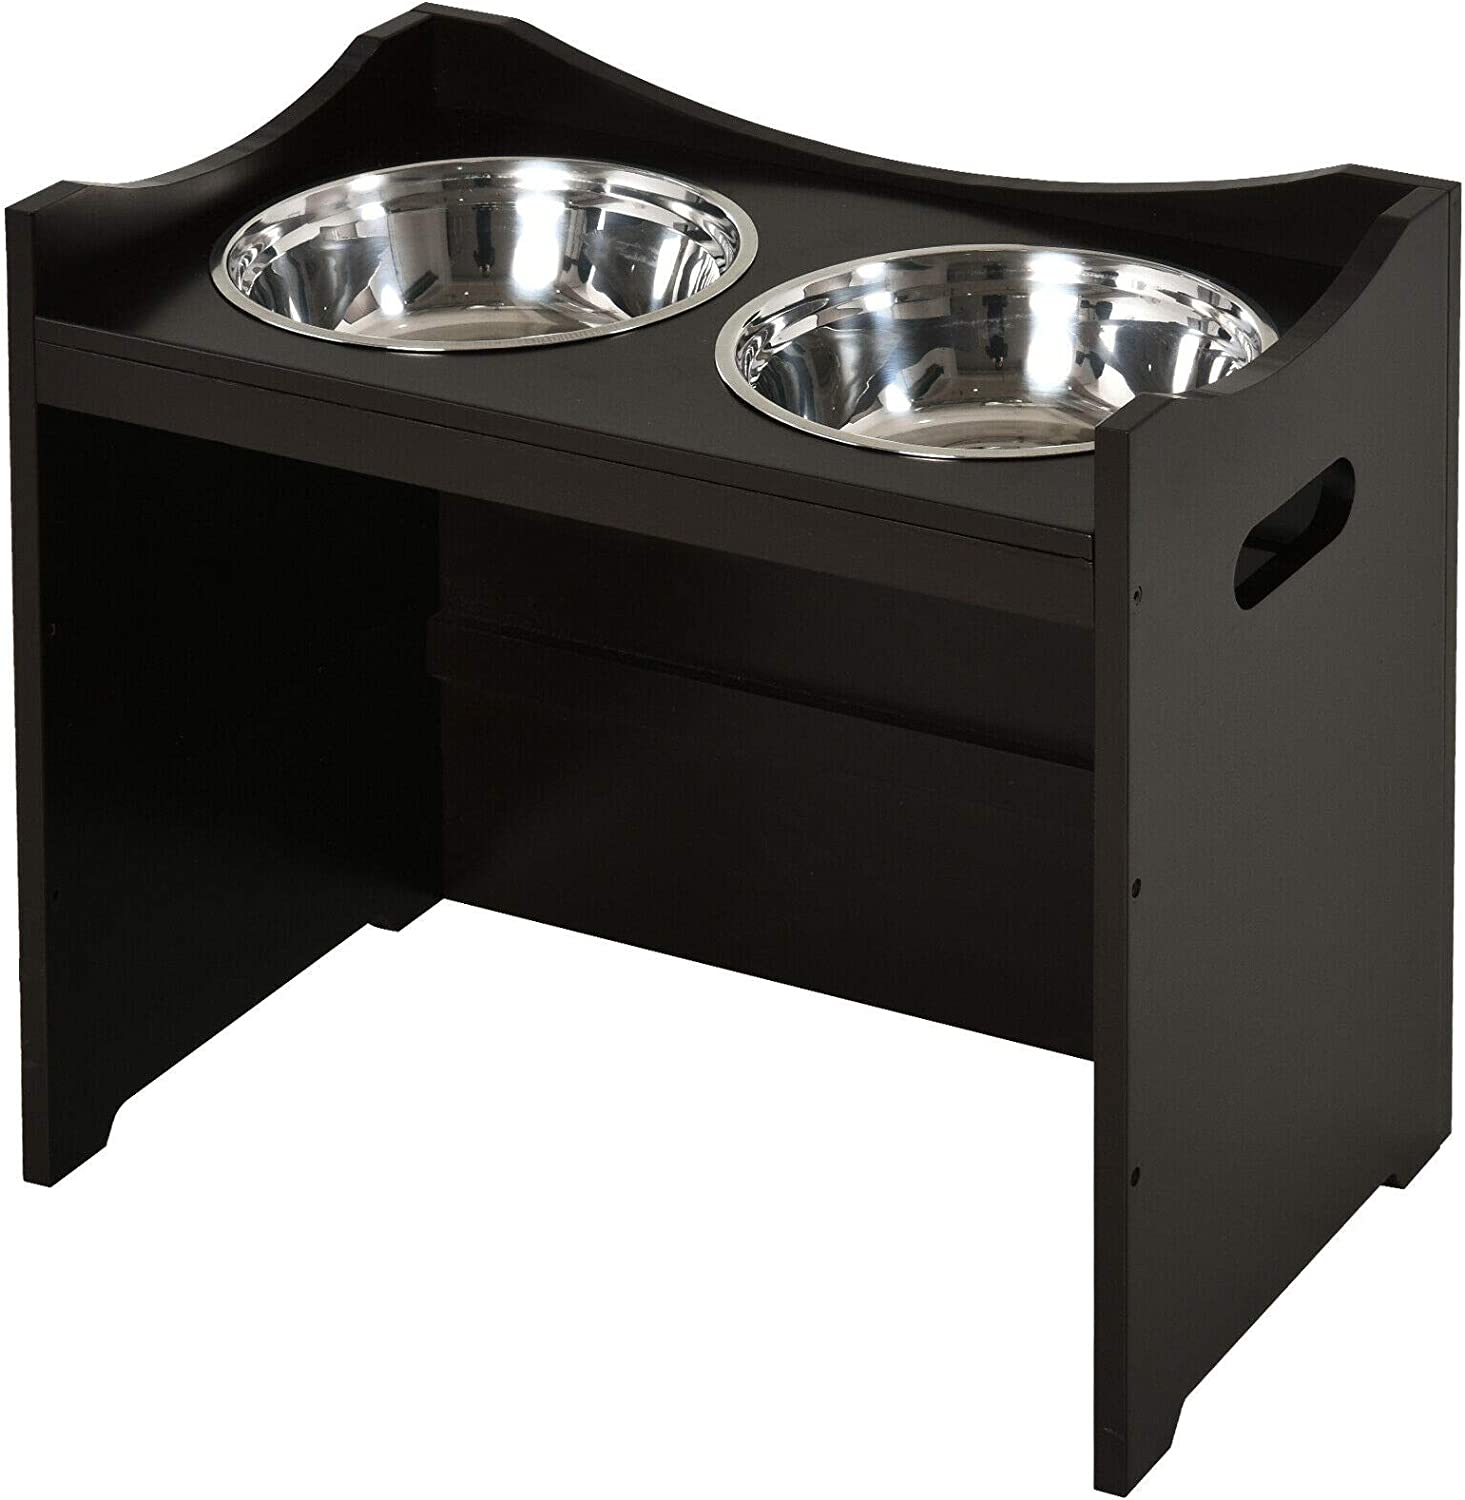 Compatible with Sales Raised Elevated Pet Bowl Steel Bowls Stainless Max 49% OFF A